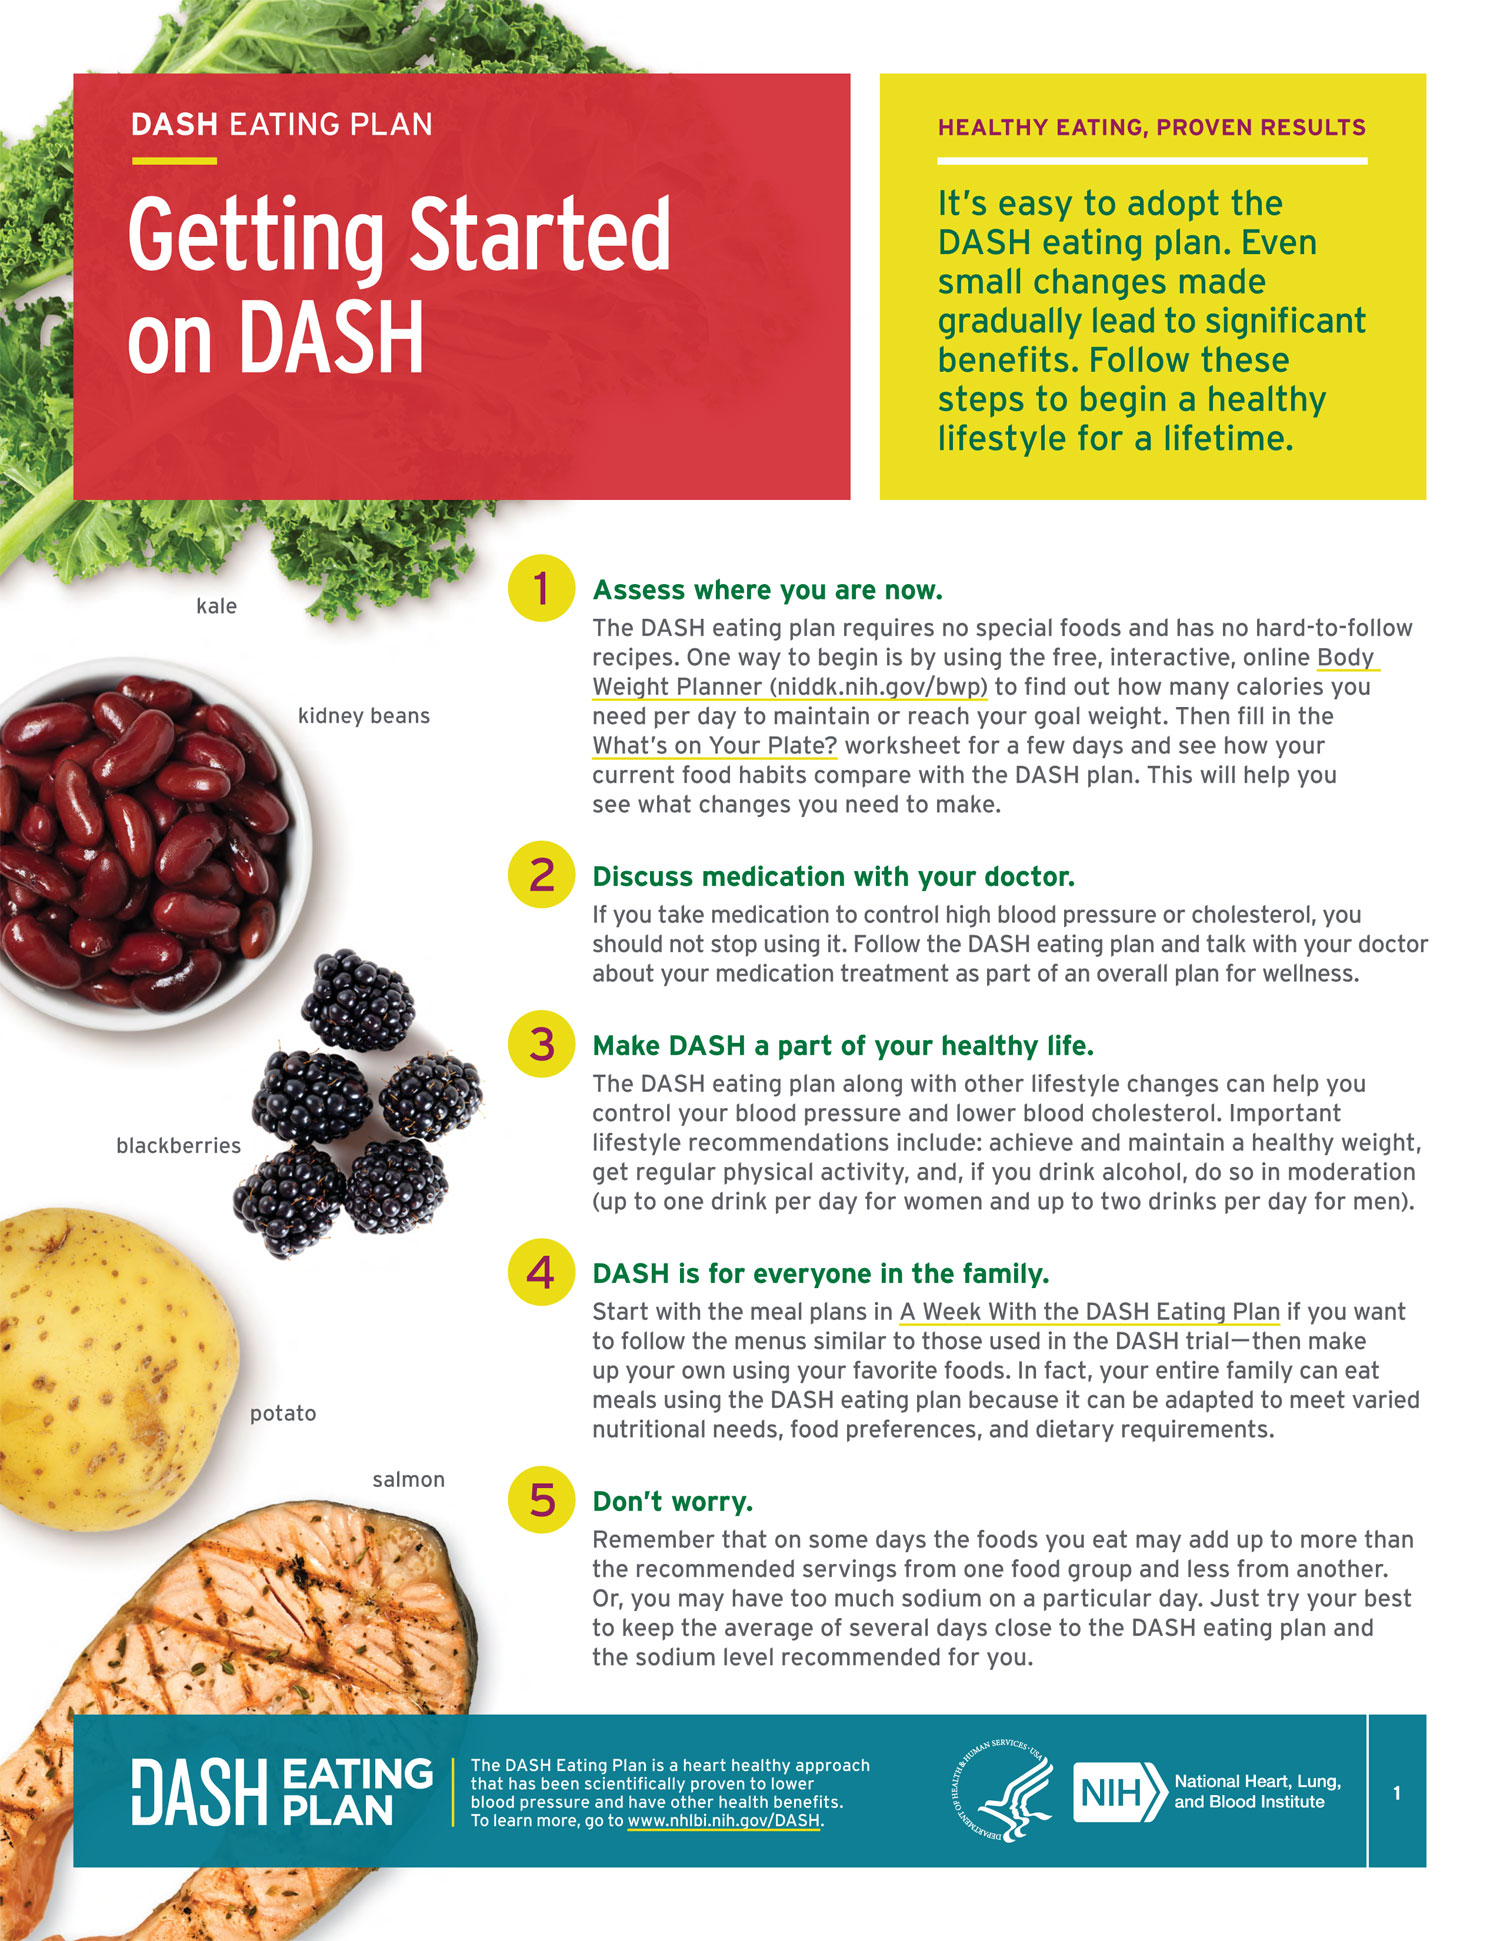 Getting Started on the DASH Eating Plan - Available to download on NIH website.